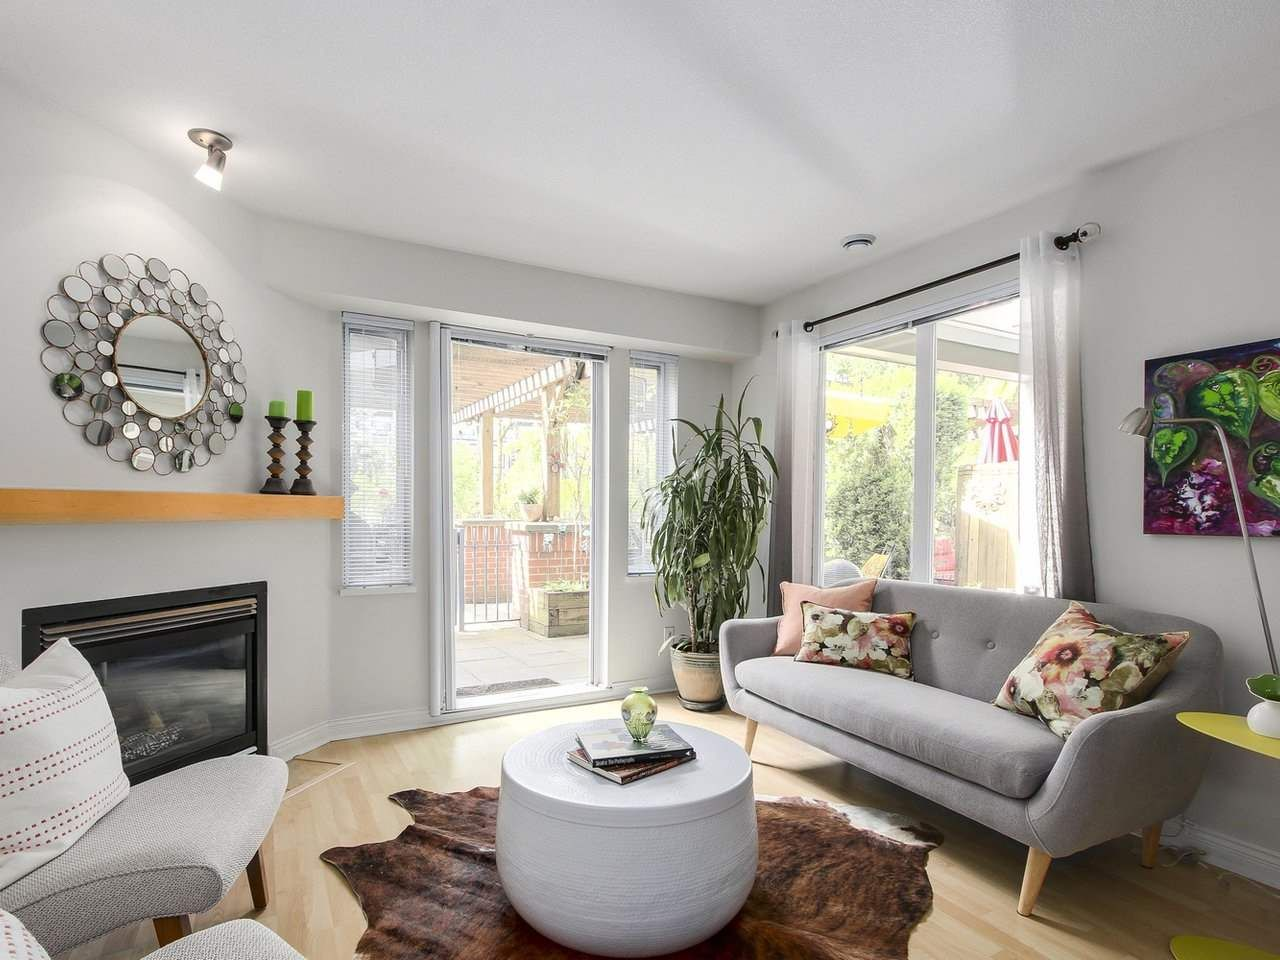 """Main Photo: 112 2628 YEW Street in Vancouver: Kitsilano Condo for sale in """"Connaught Place"""" (Vancouver West)  : MLS®# R2171360"""